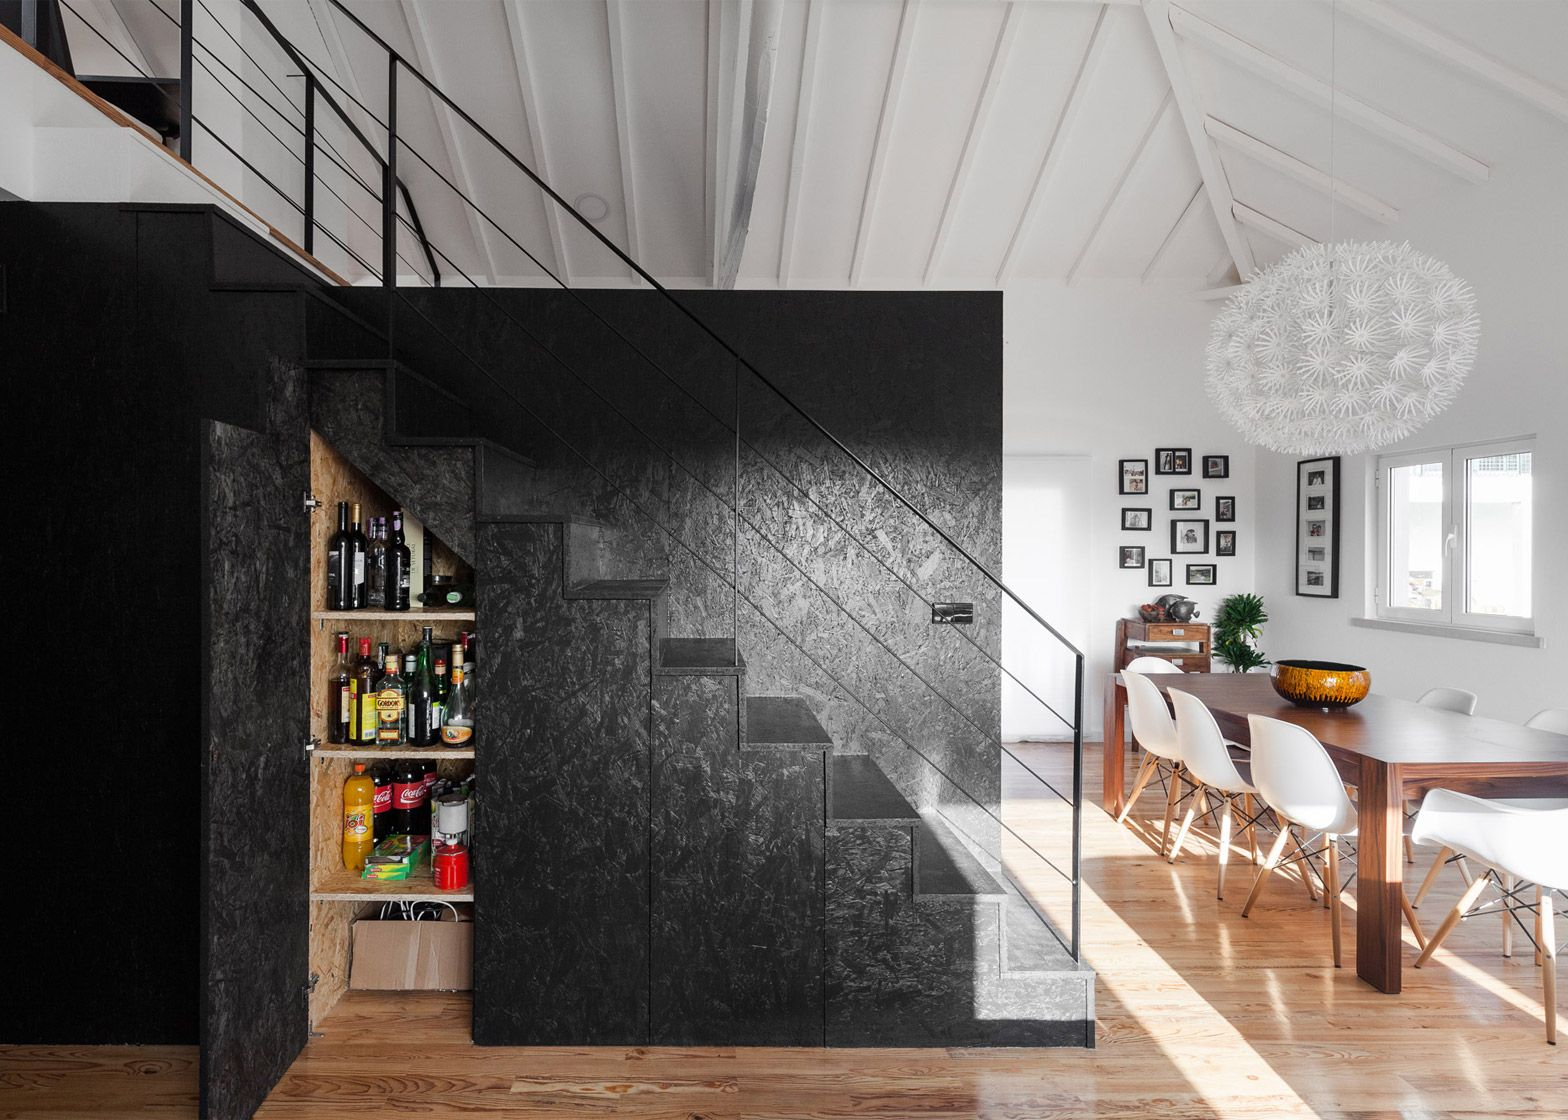 barn house monte real by ines brandao diy and crafts house barn rh pinterest com